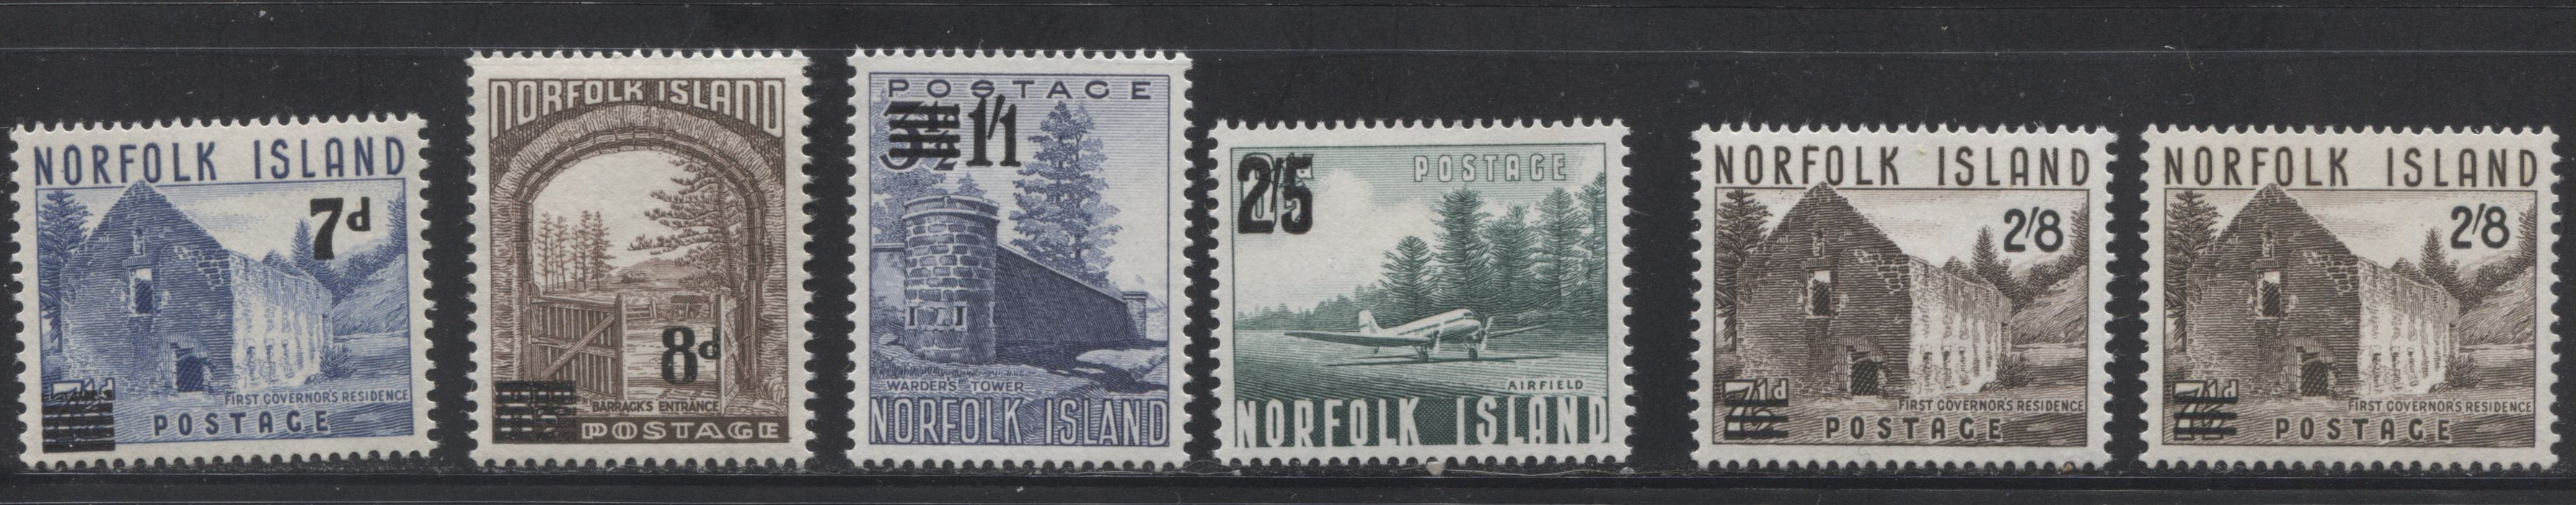 Norfolk Island #21-22, 26-28 7d on 7.5d - 2/8d on 7.5d, 1958-1960 Surcharged Pictorial Definitive Issue, a VFNH Mint Set